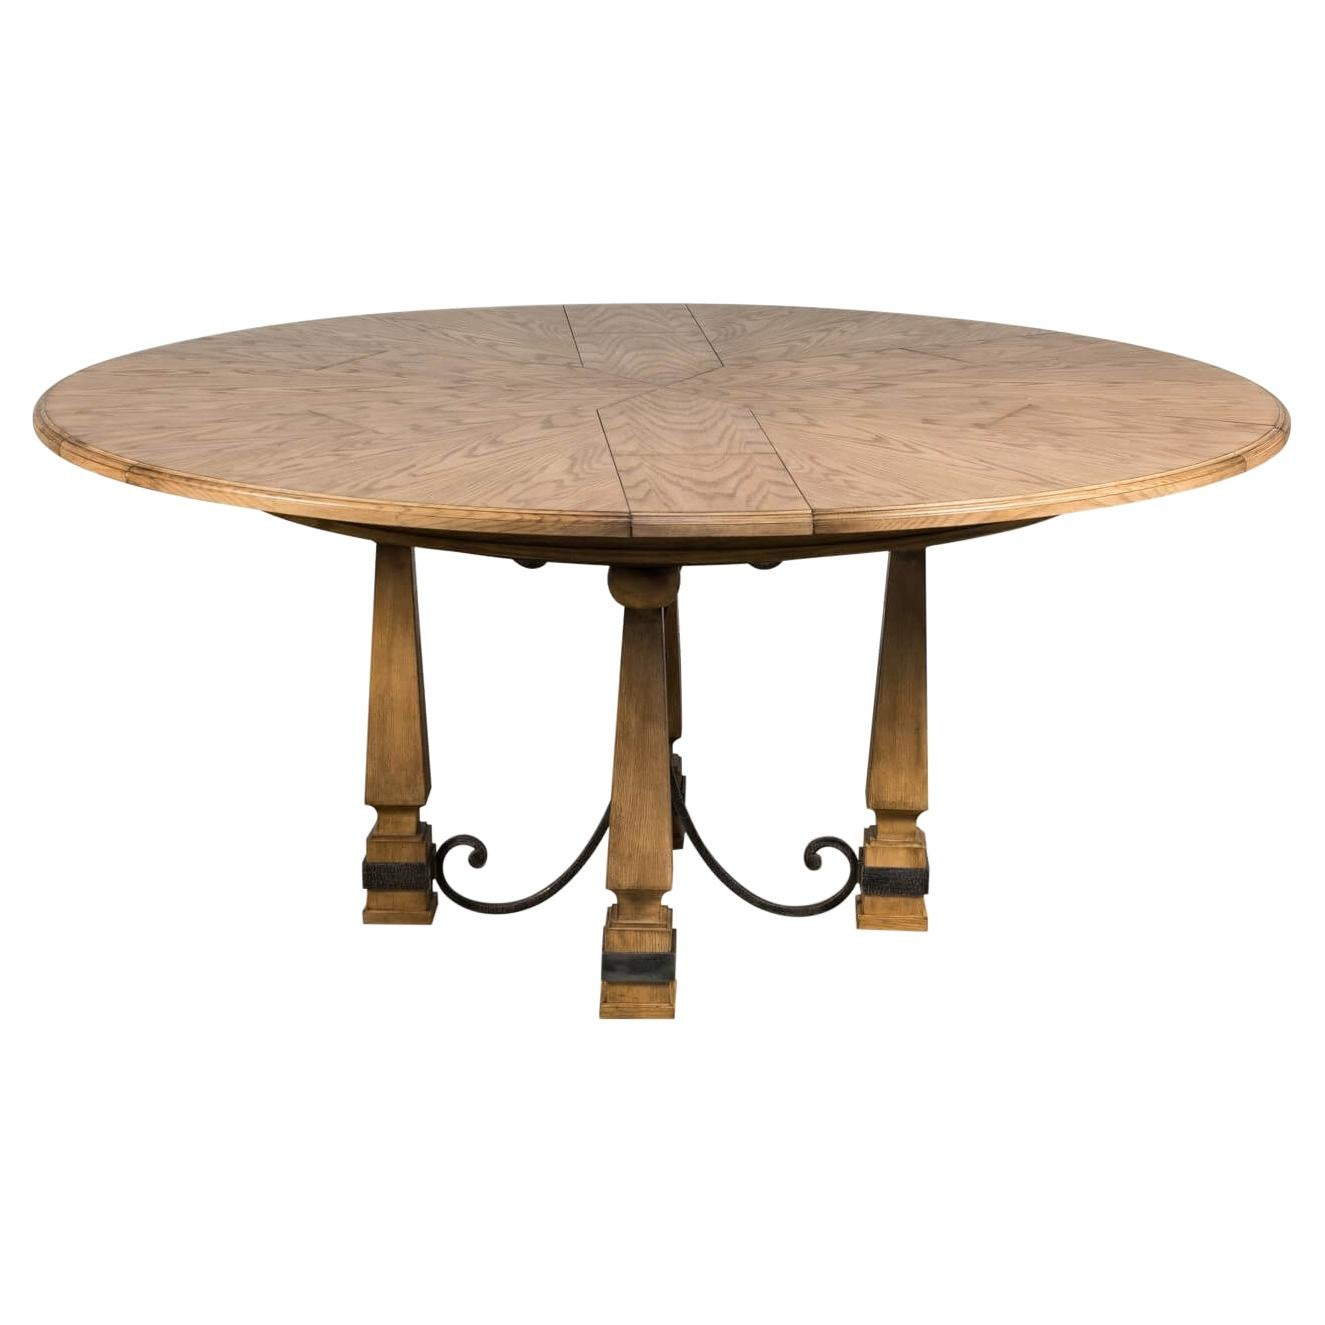 Arts & Crafts-Style Jupe Dining Table